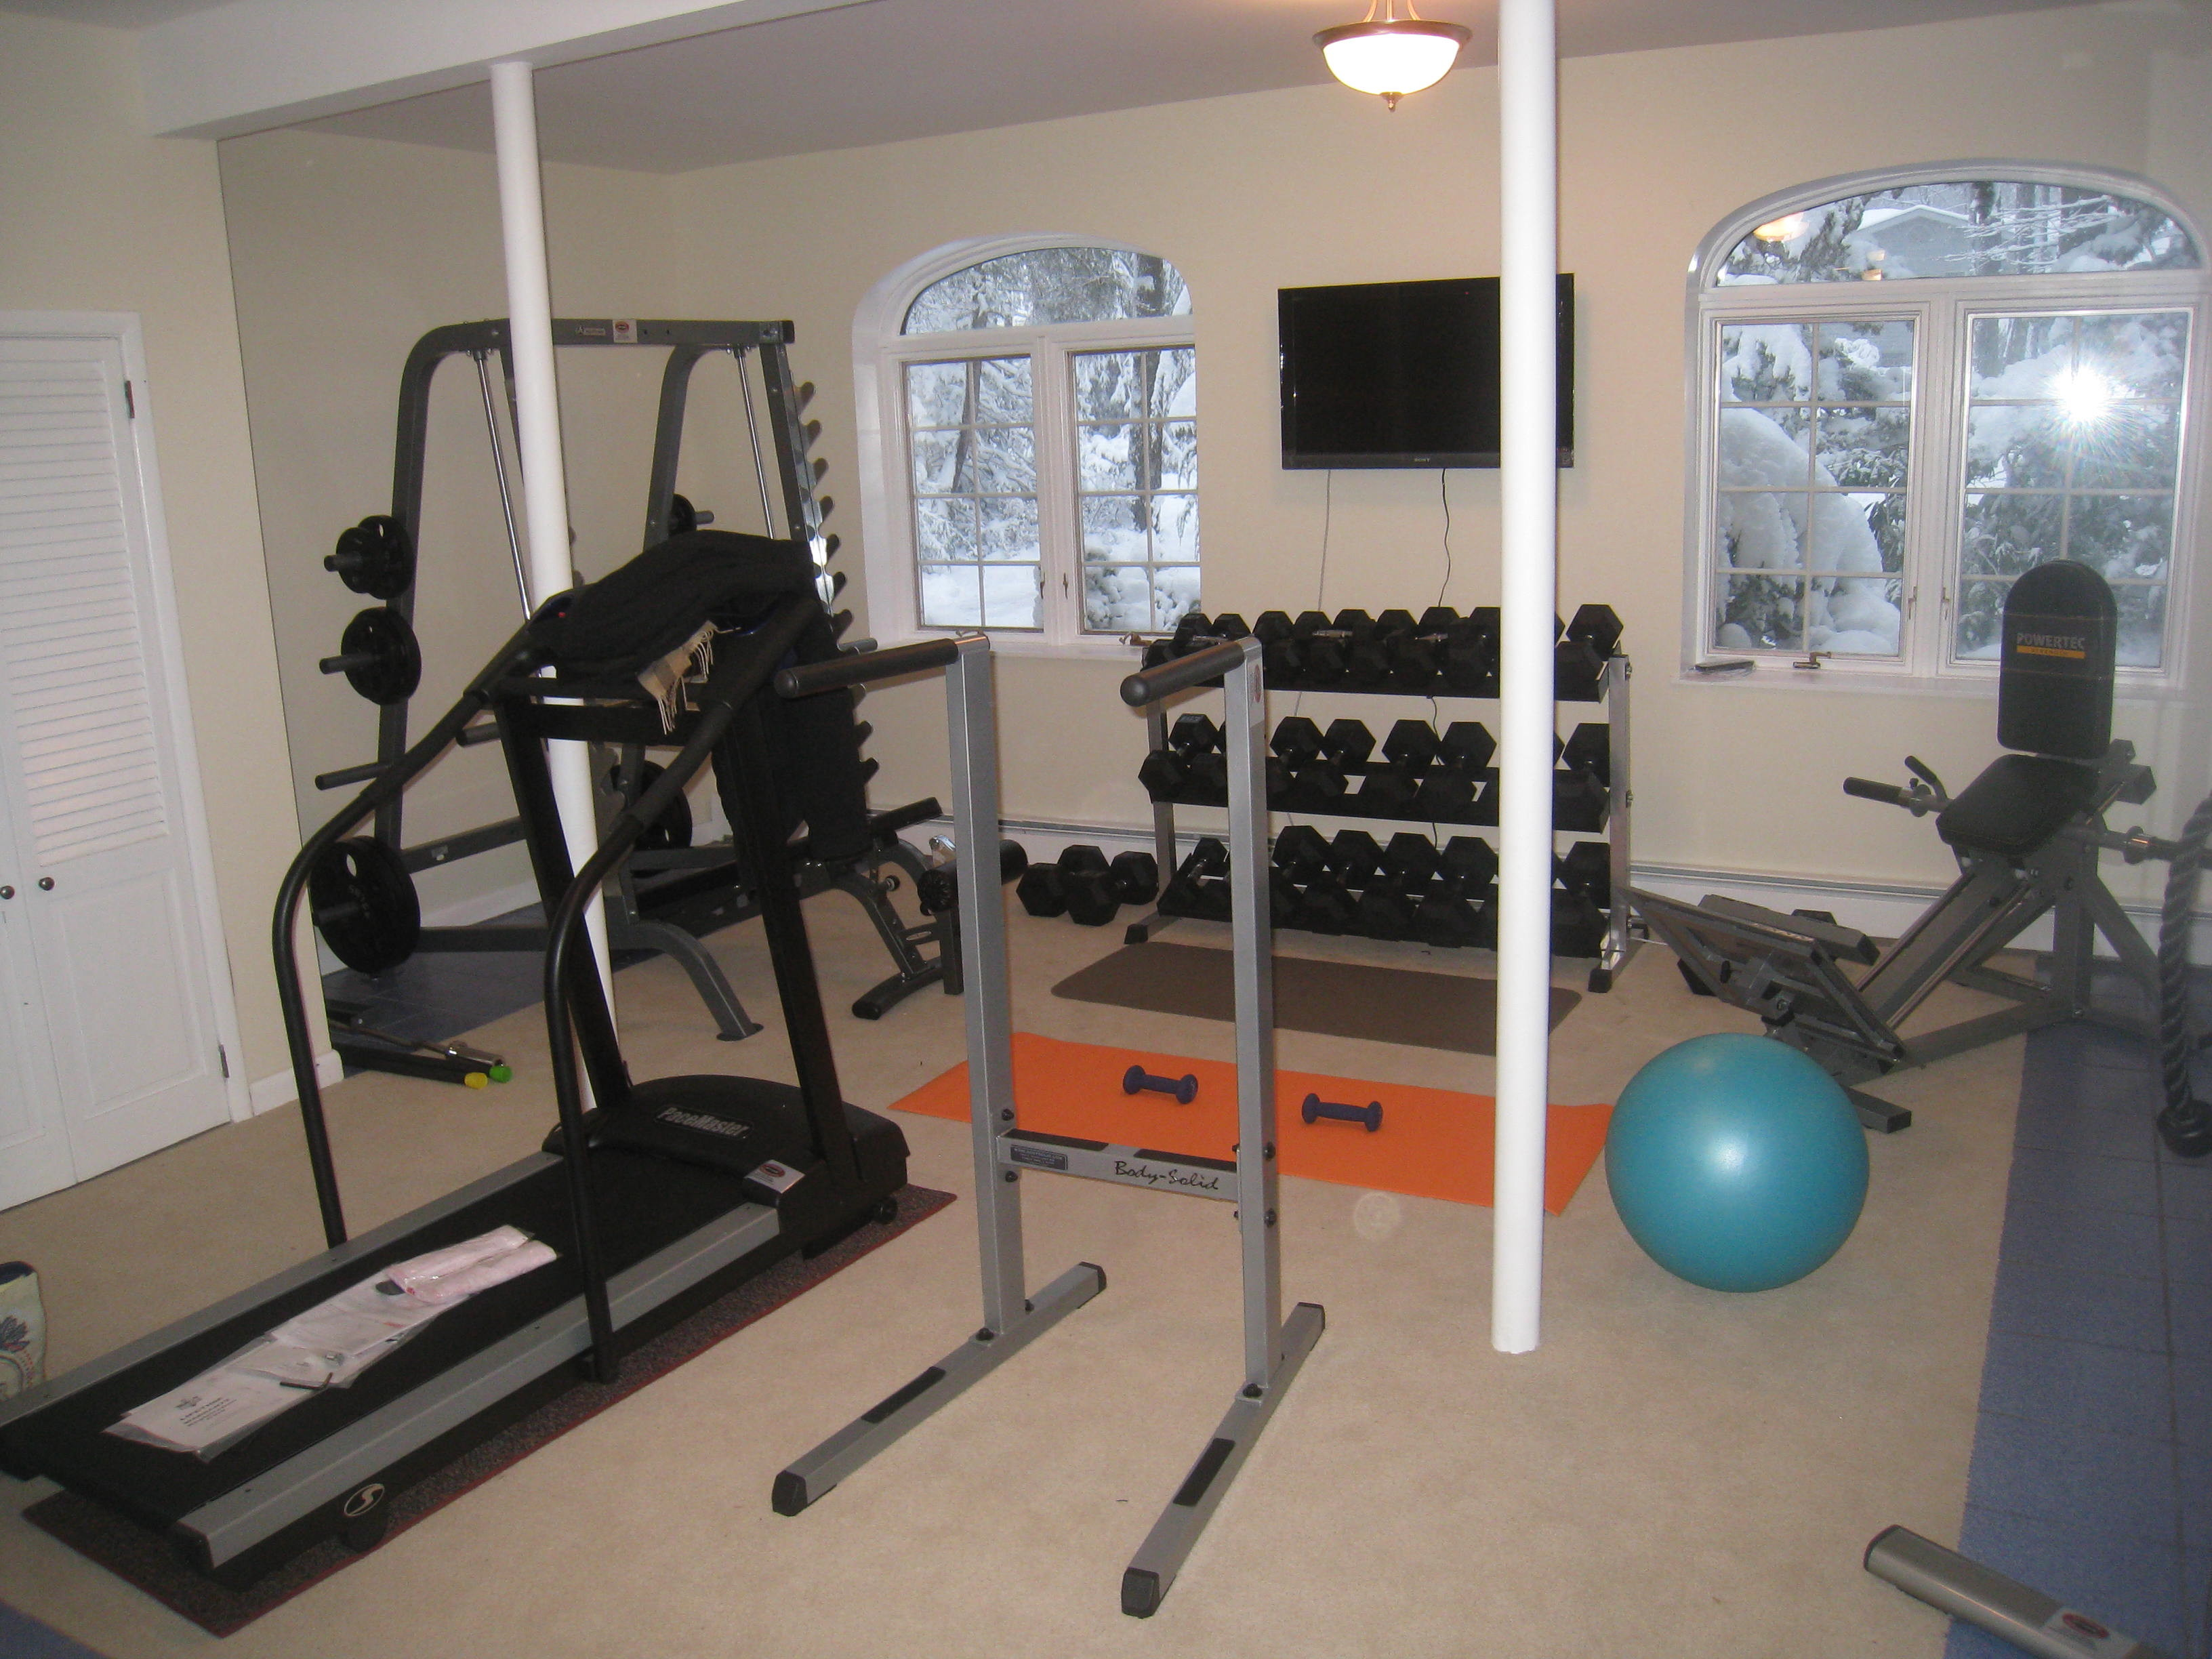 Home Gym Equipment in Walnut Creek CA | Exercise Equipment